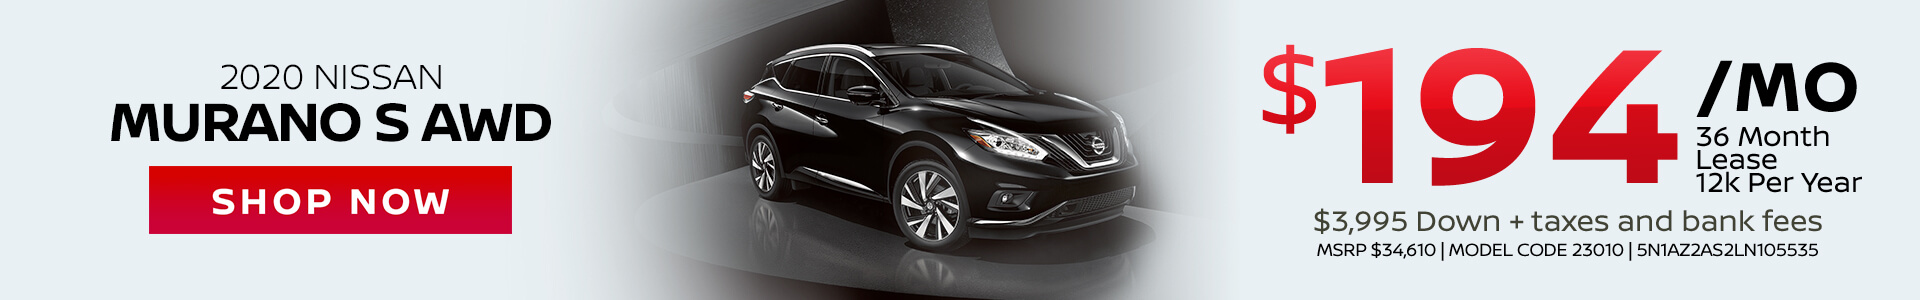 Nissan Murano $194 Lease